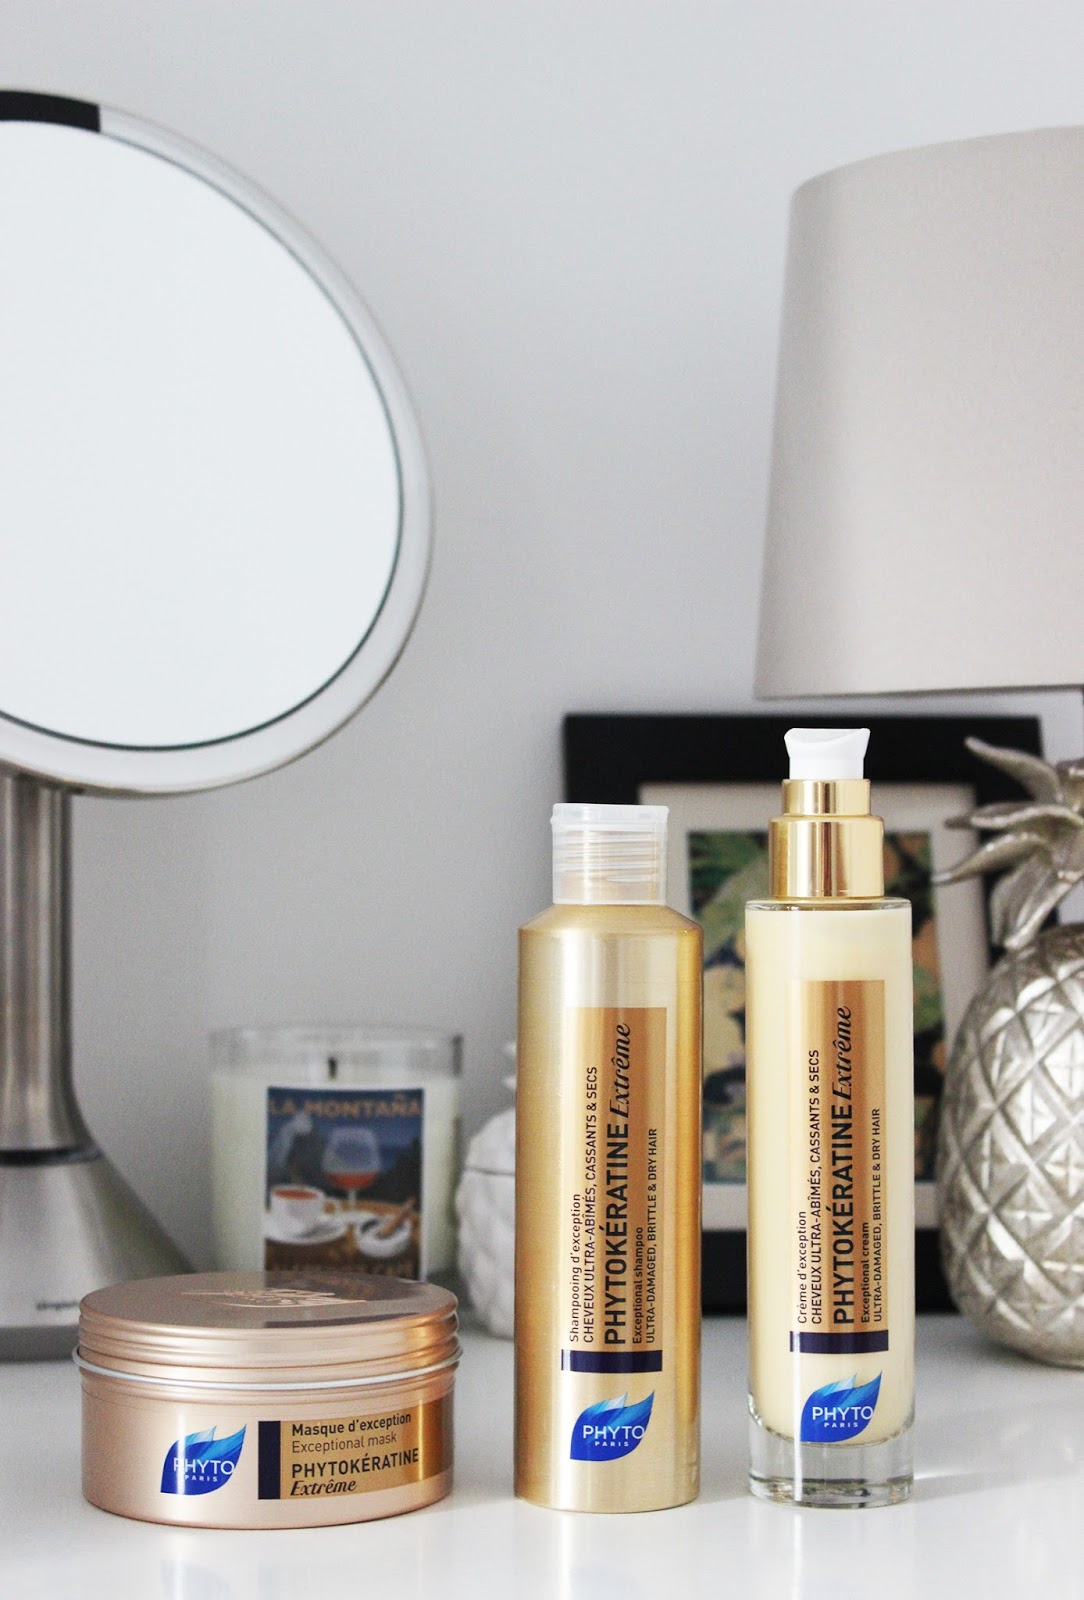 PhytoKeratine Extreme hair products review